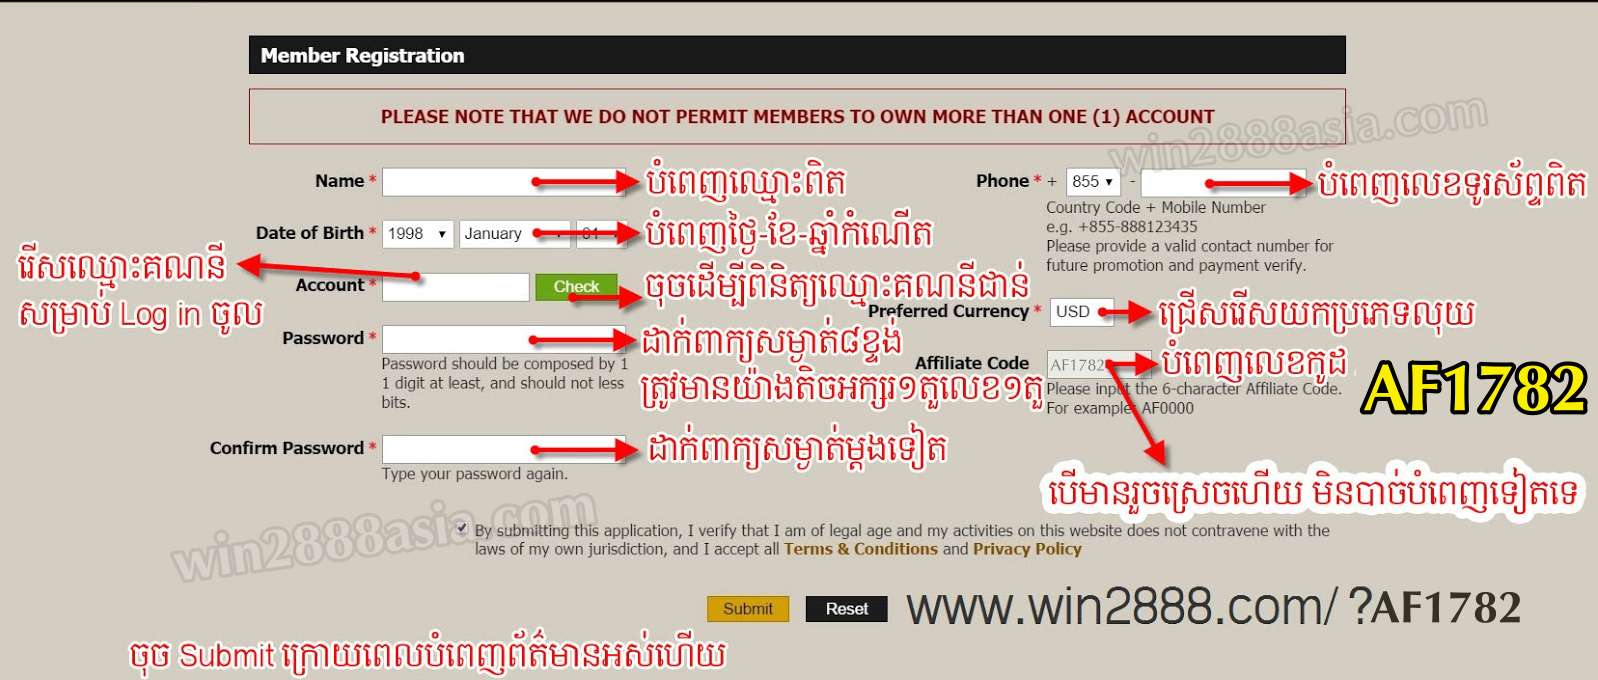 Register Win2888 Open New Account with 2 easy steps in 3 minutes